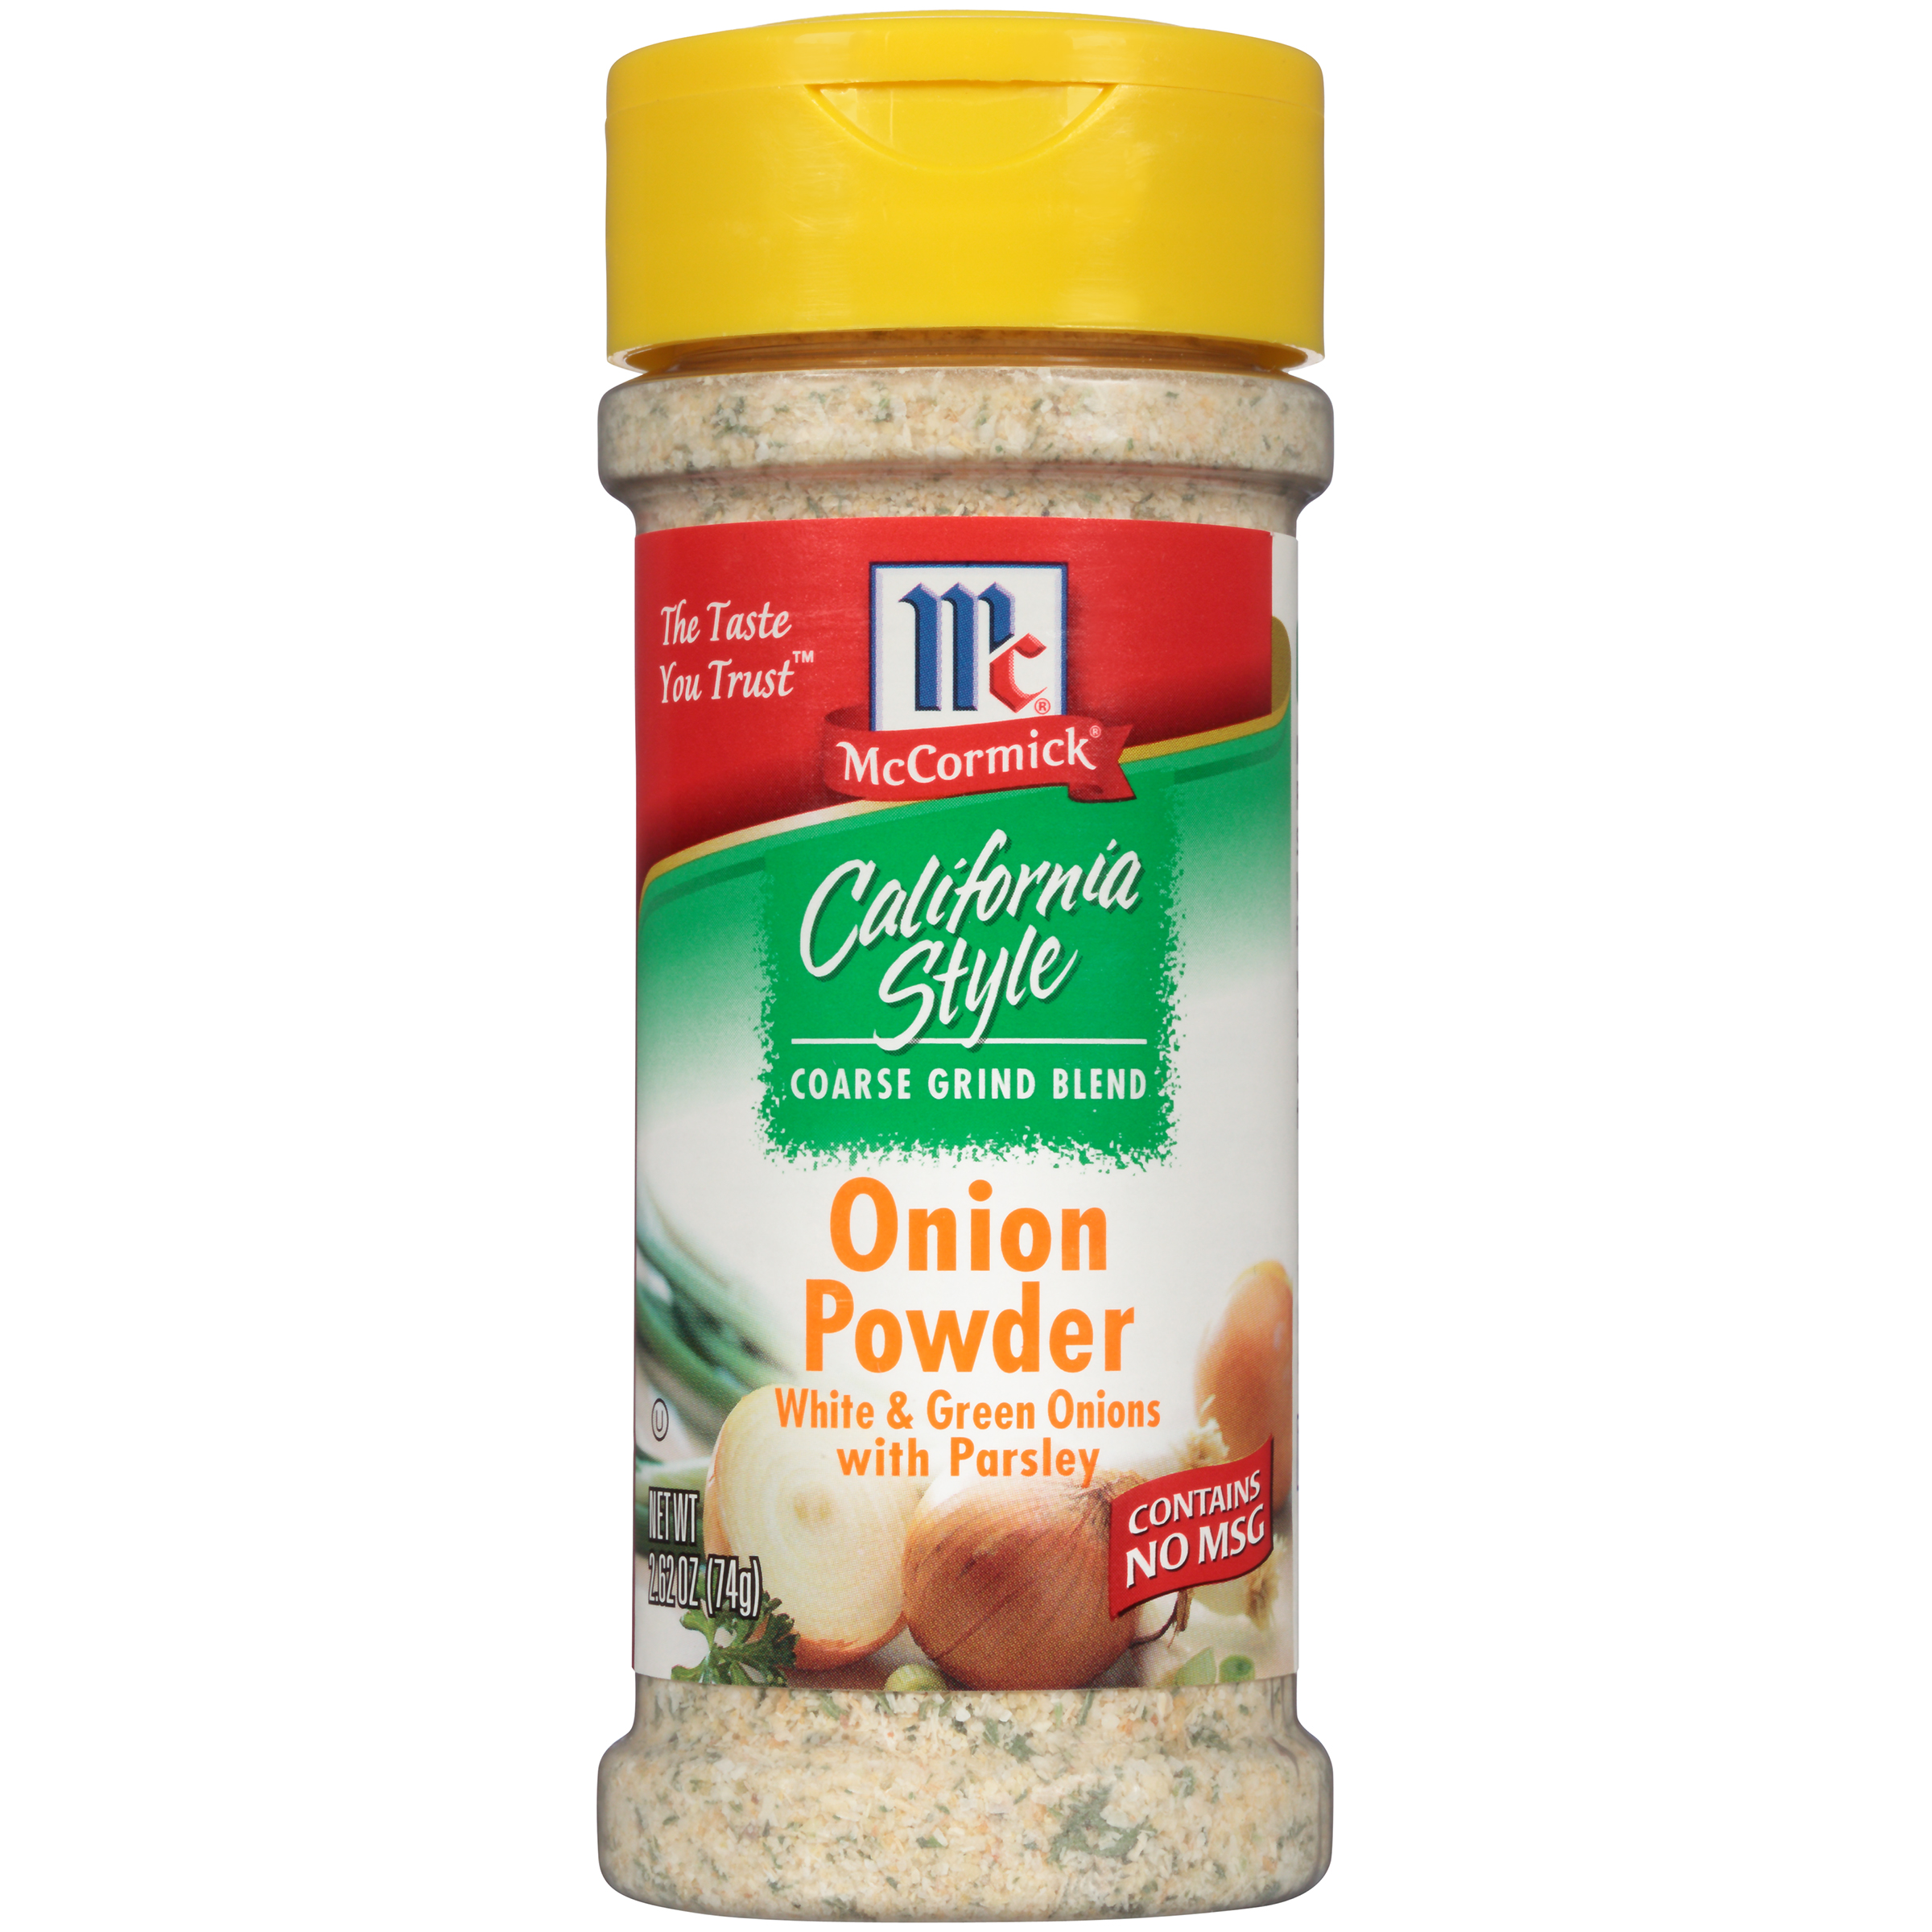 (2 Pack) McCormick California Style Onion Powder Coarse Grind Blend, 2.62 oz